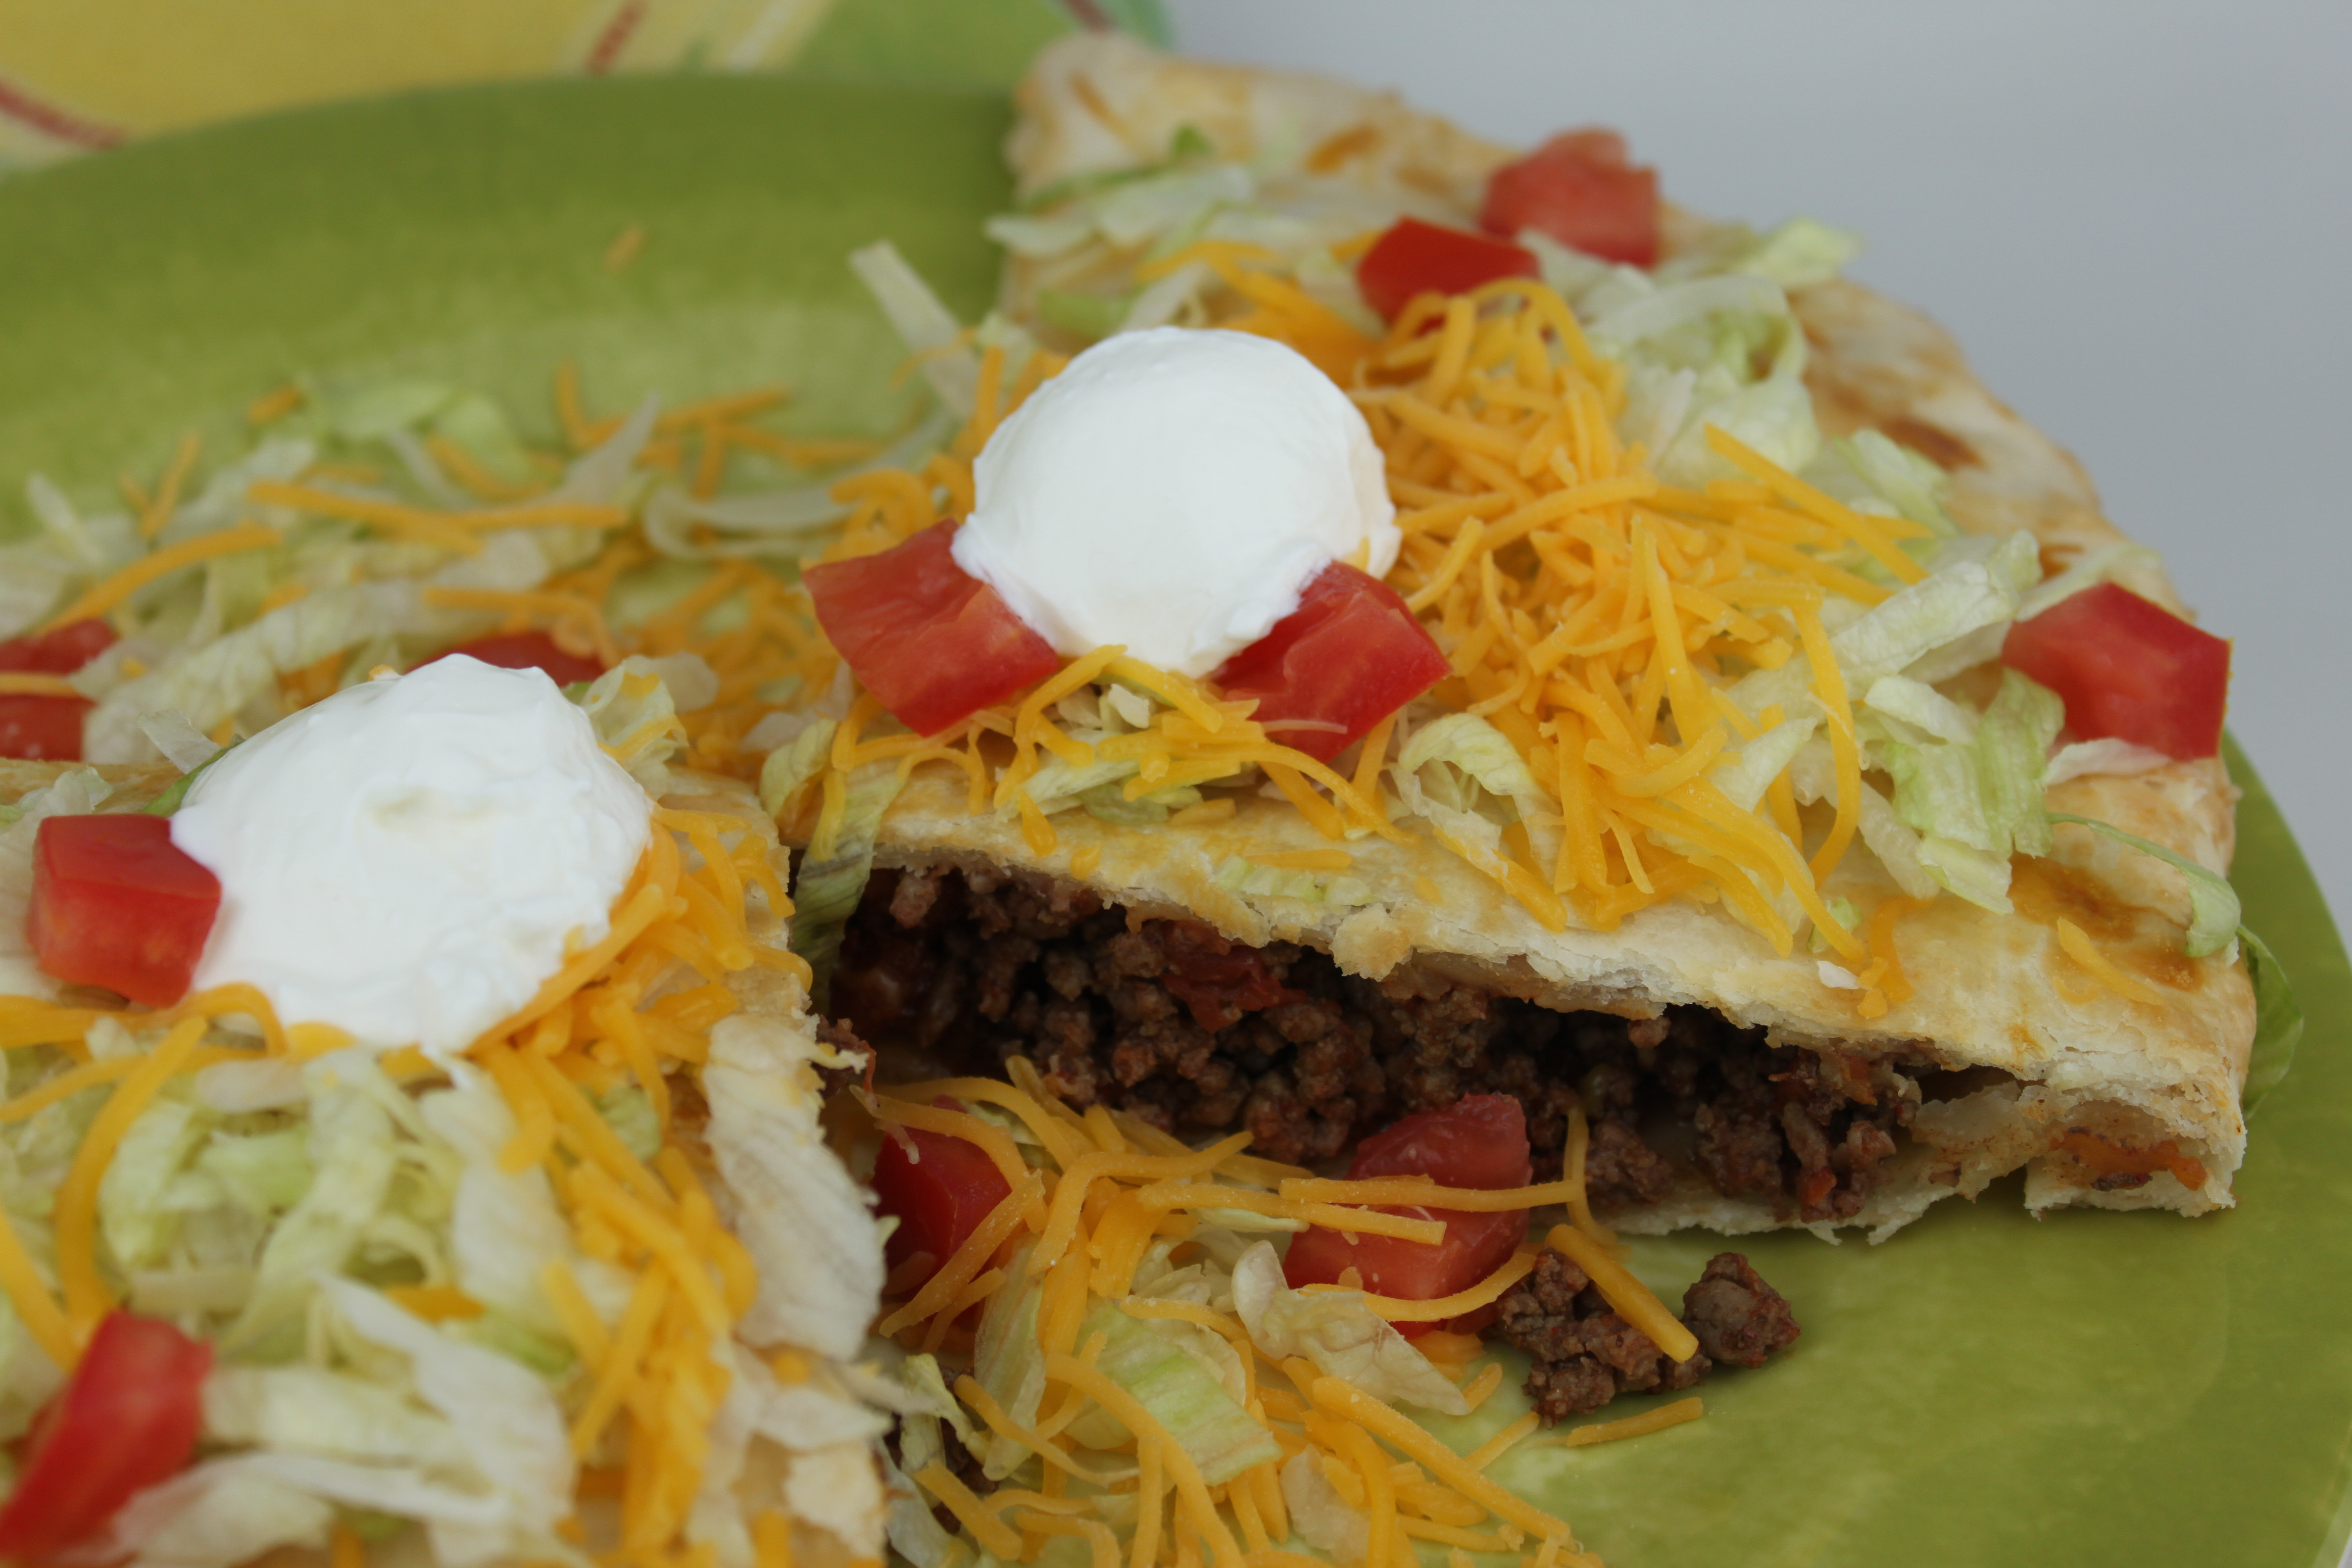 Ground beef and seasonings make this an easy and yummy dish!